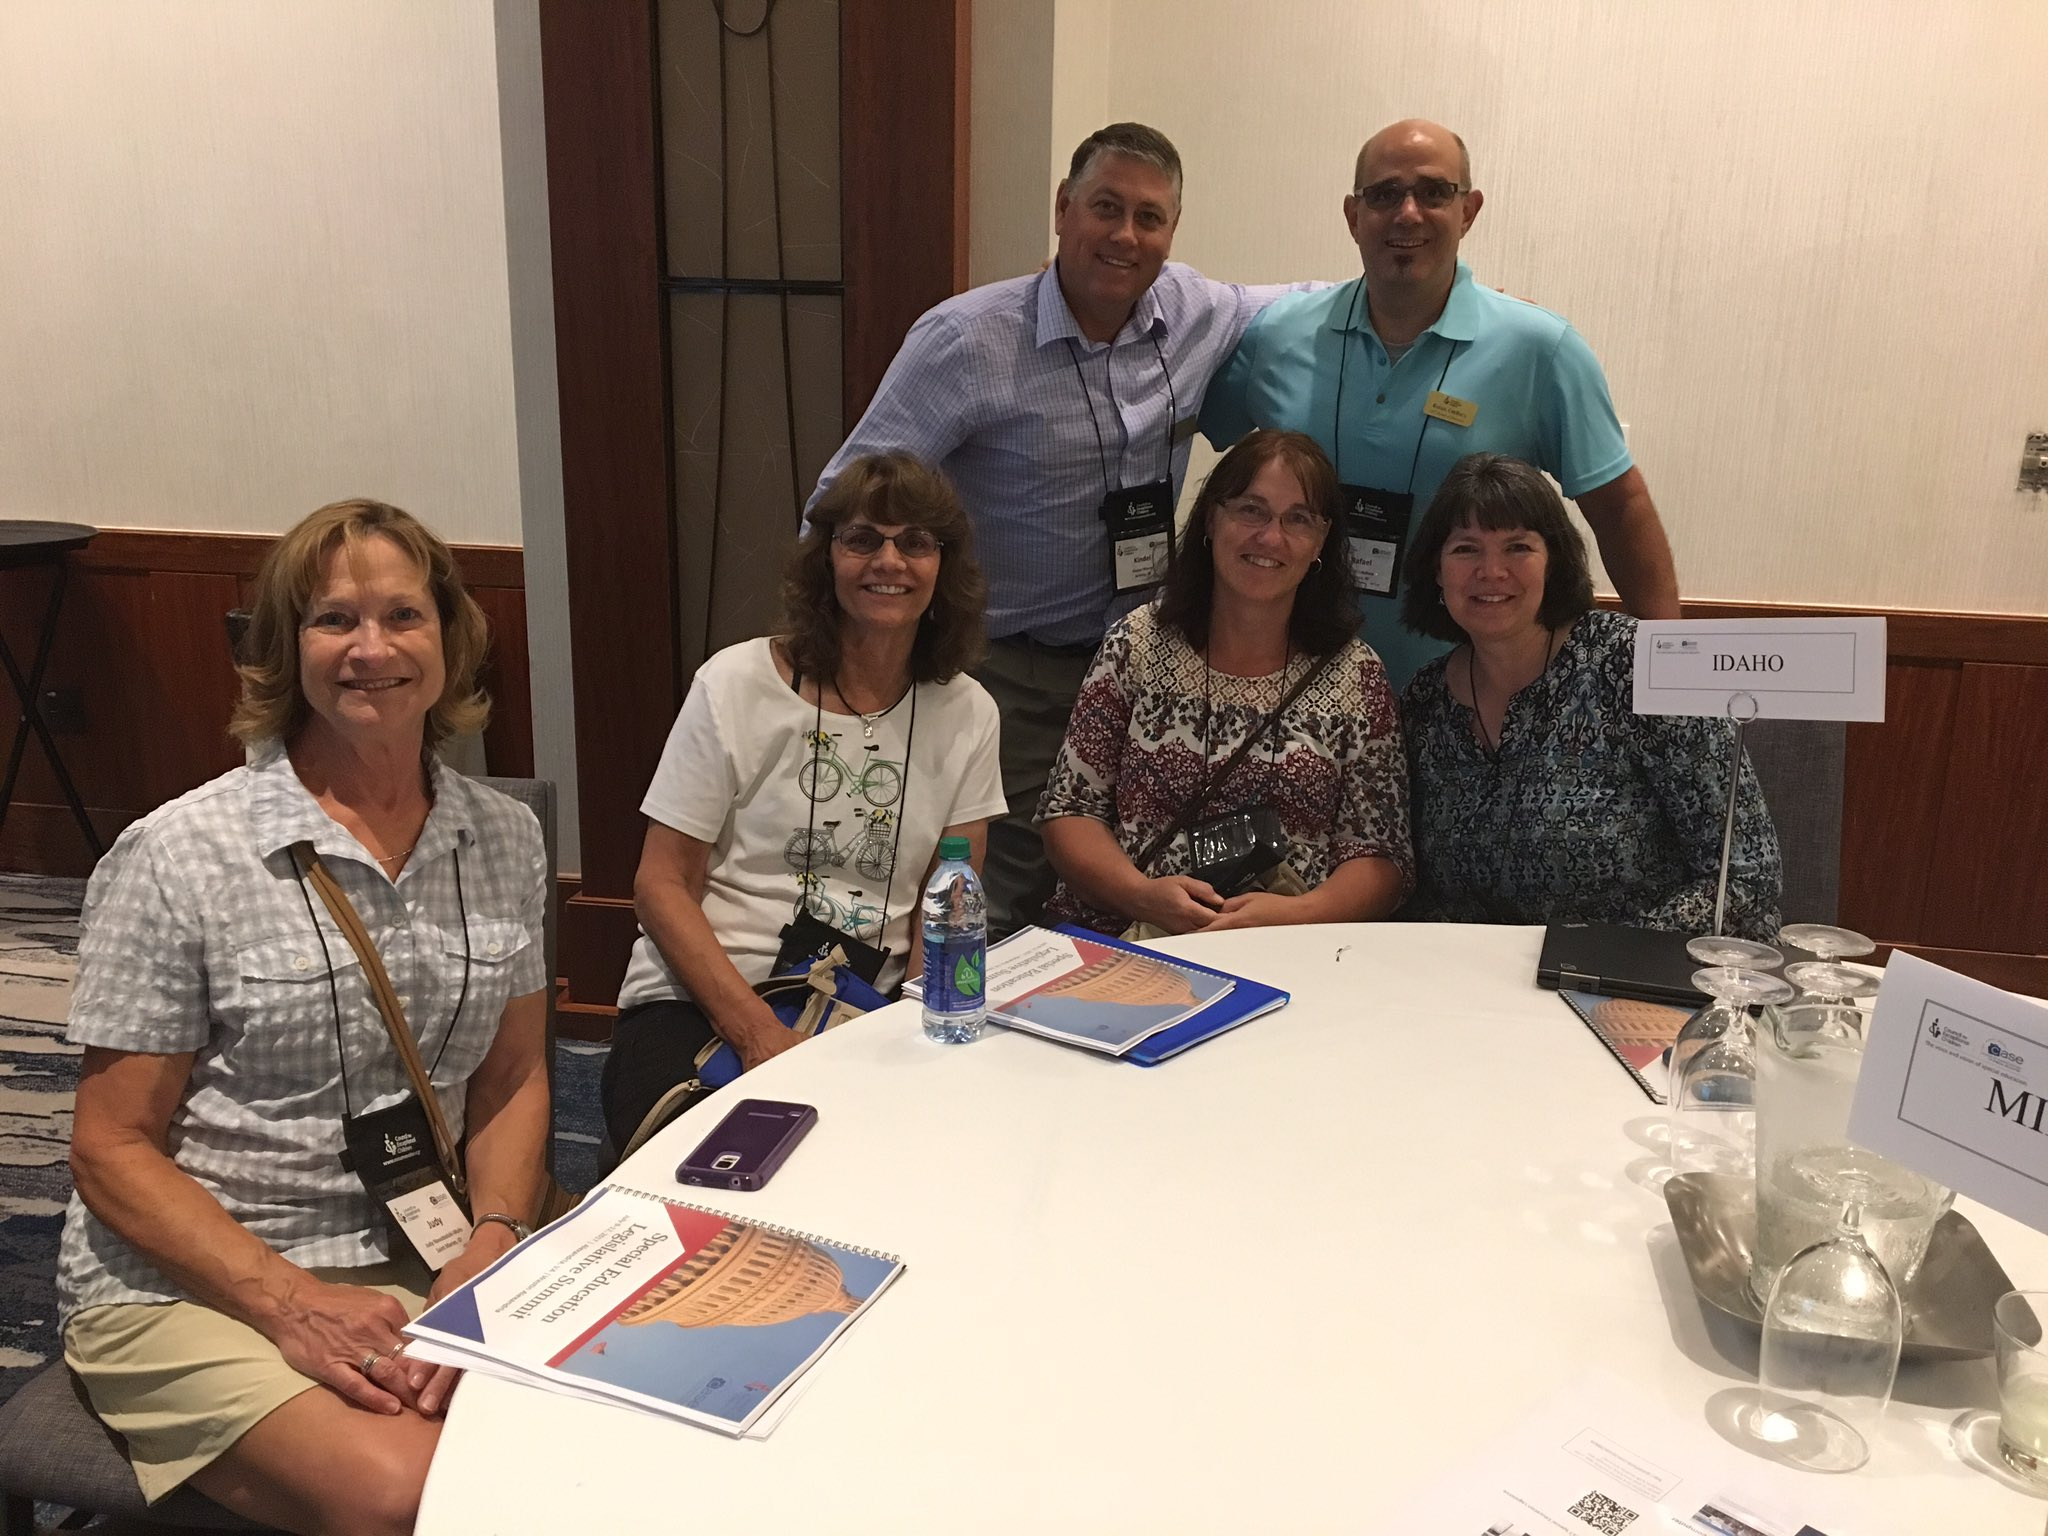 Idaho is excited to be here with our biggest team ever!  Hoping to make a difference.  #SELS2017 #4specialeducation https://t.co/CyNI4JGSF8